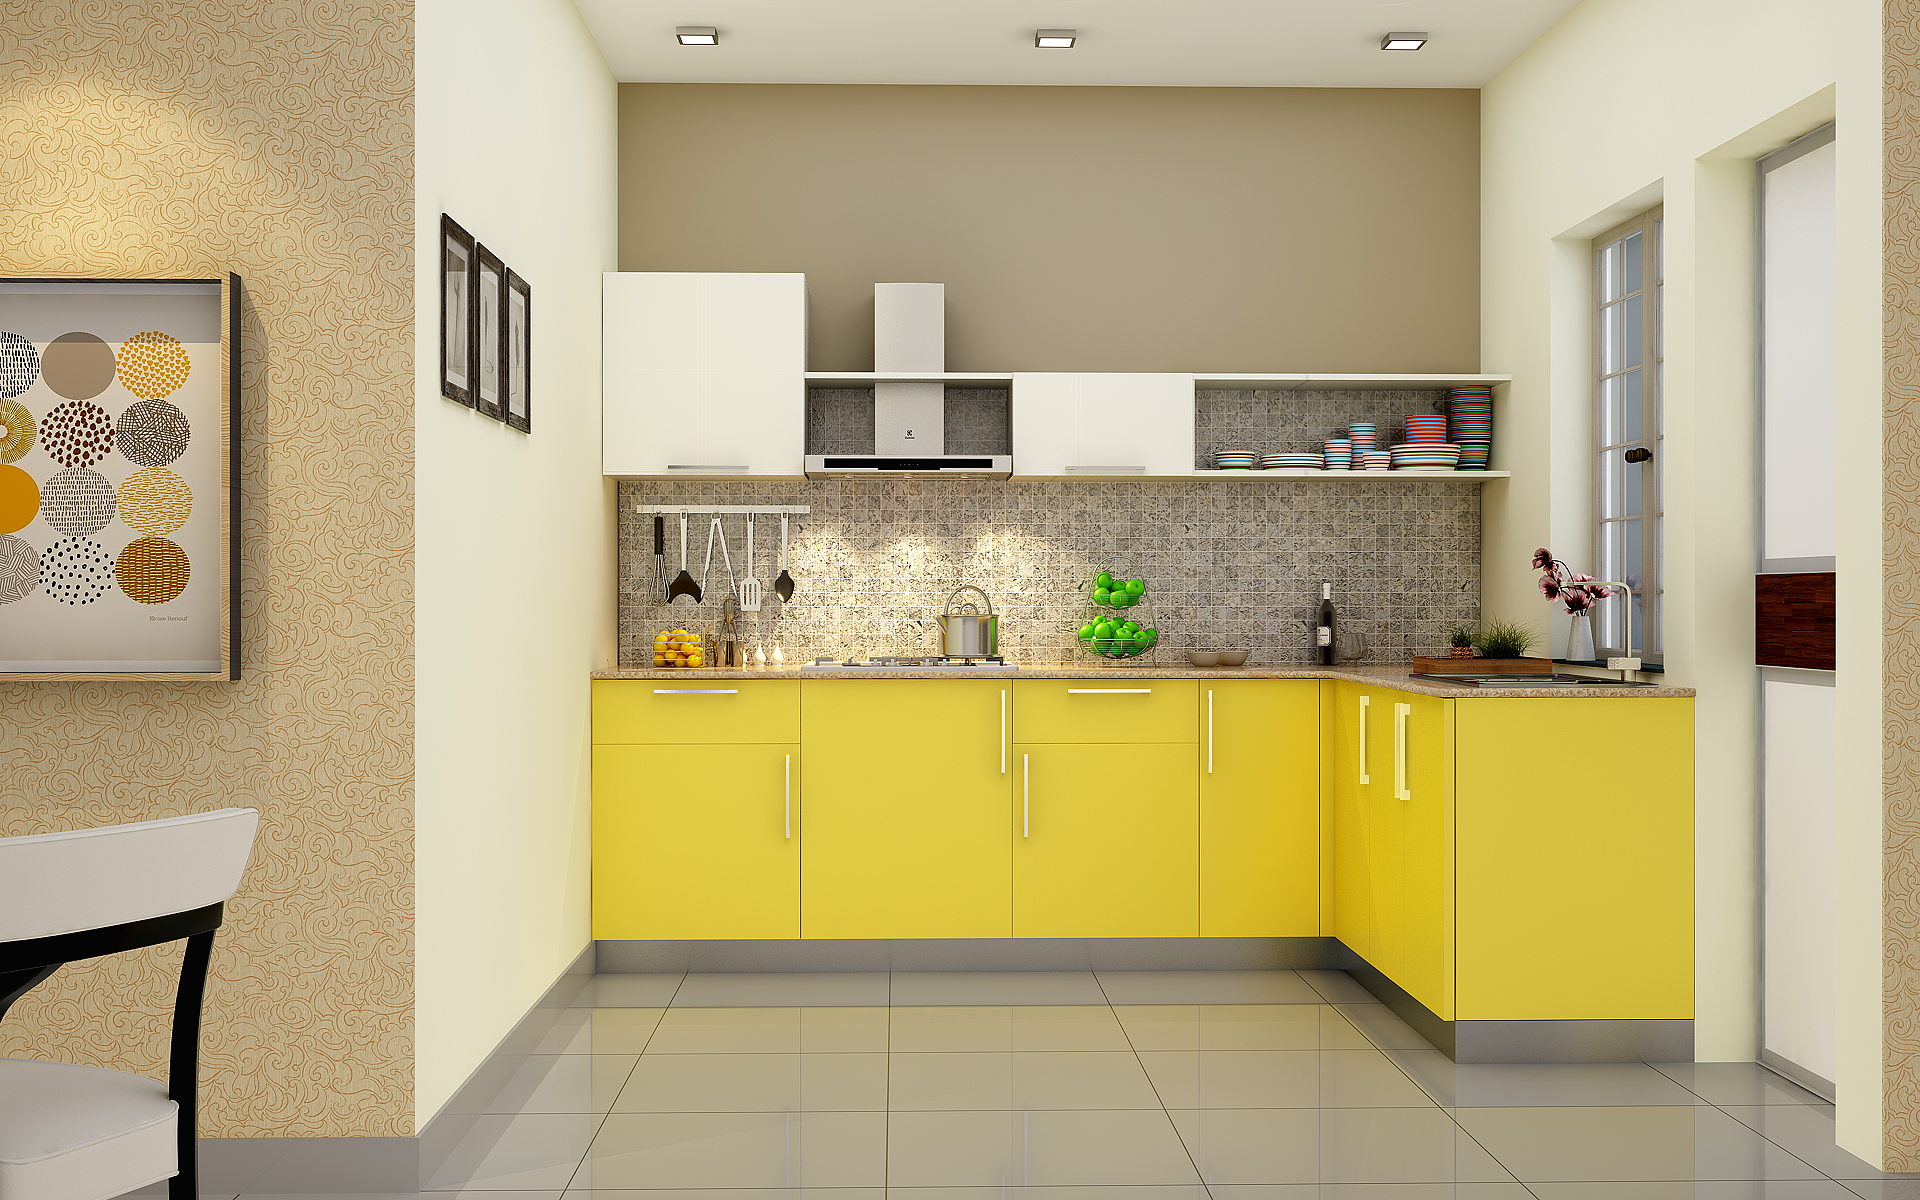 Buy Modular Latest Budget Kitchens online India HomeLanecom